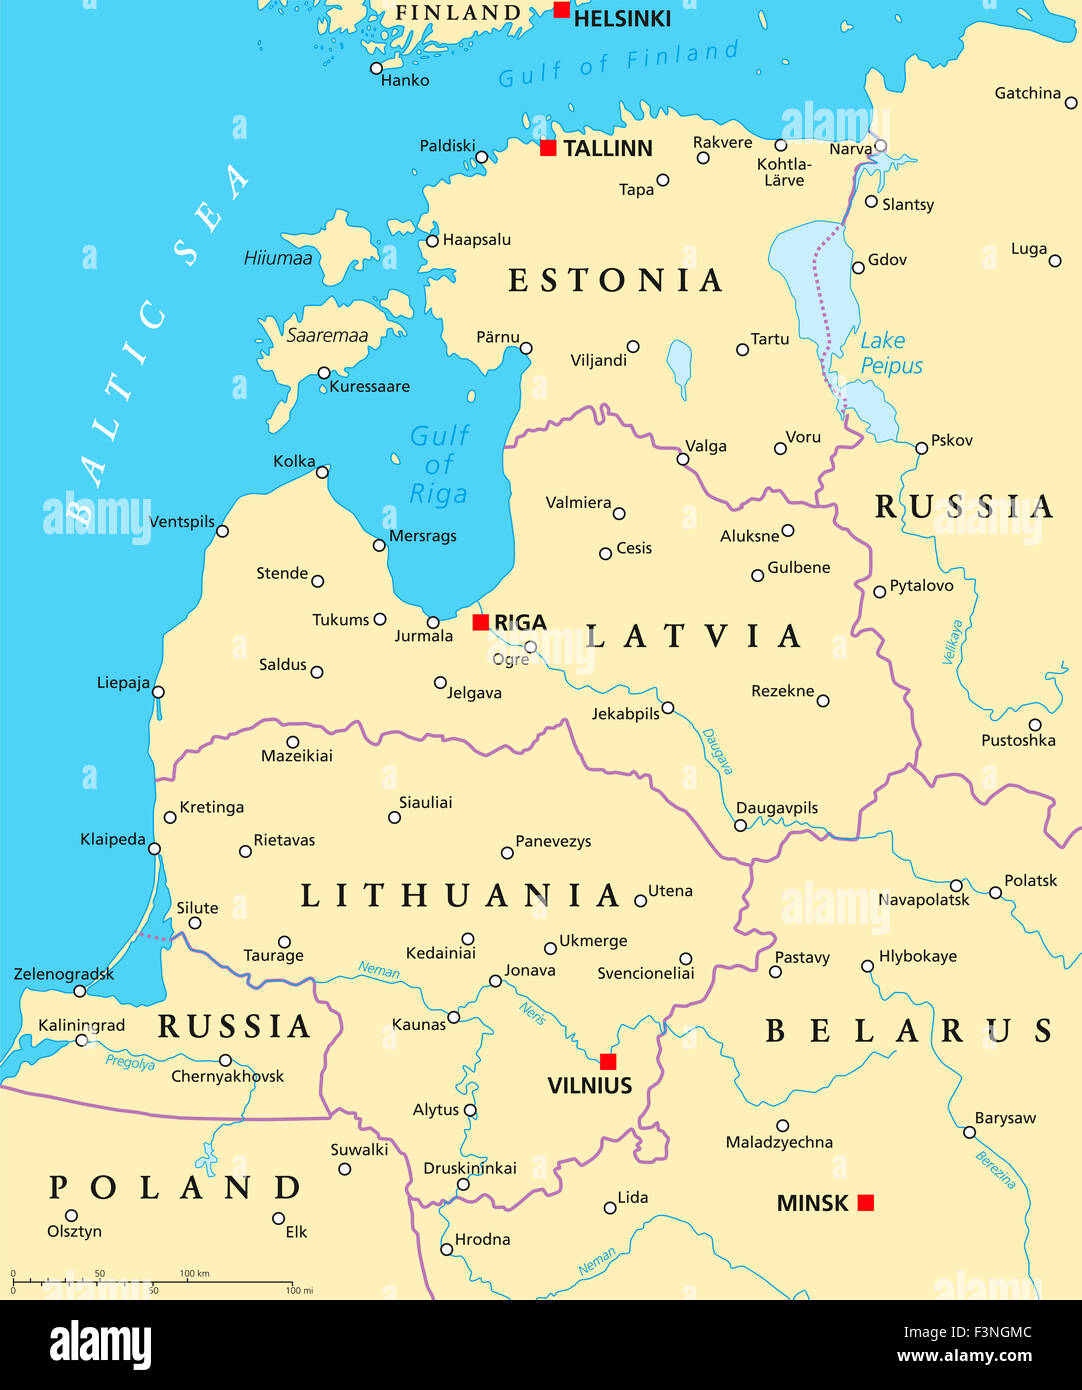 Baltic countries political map Baltic states area with capitals